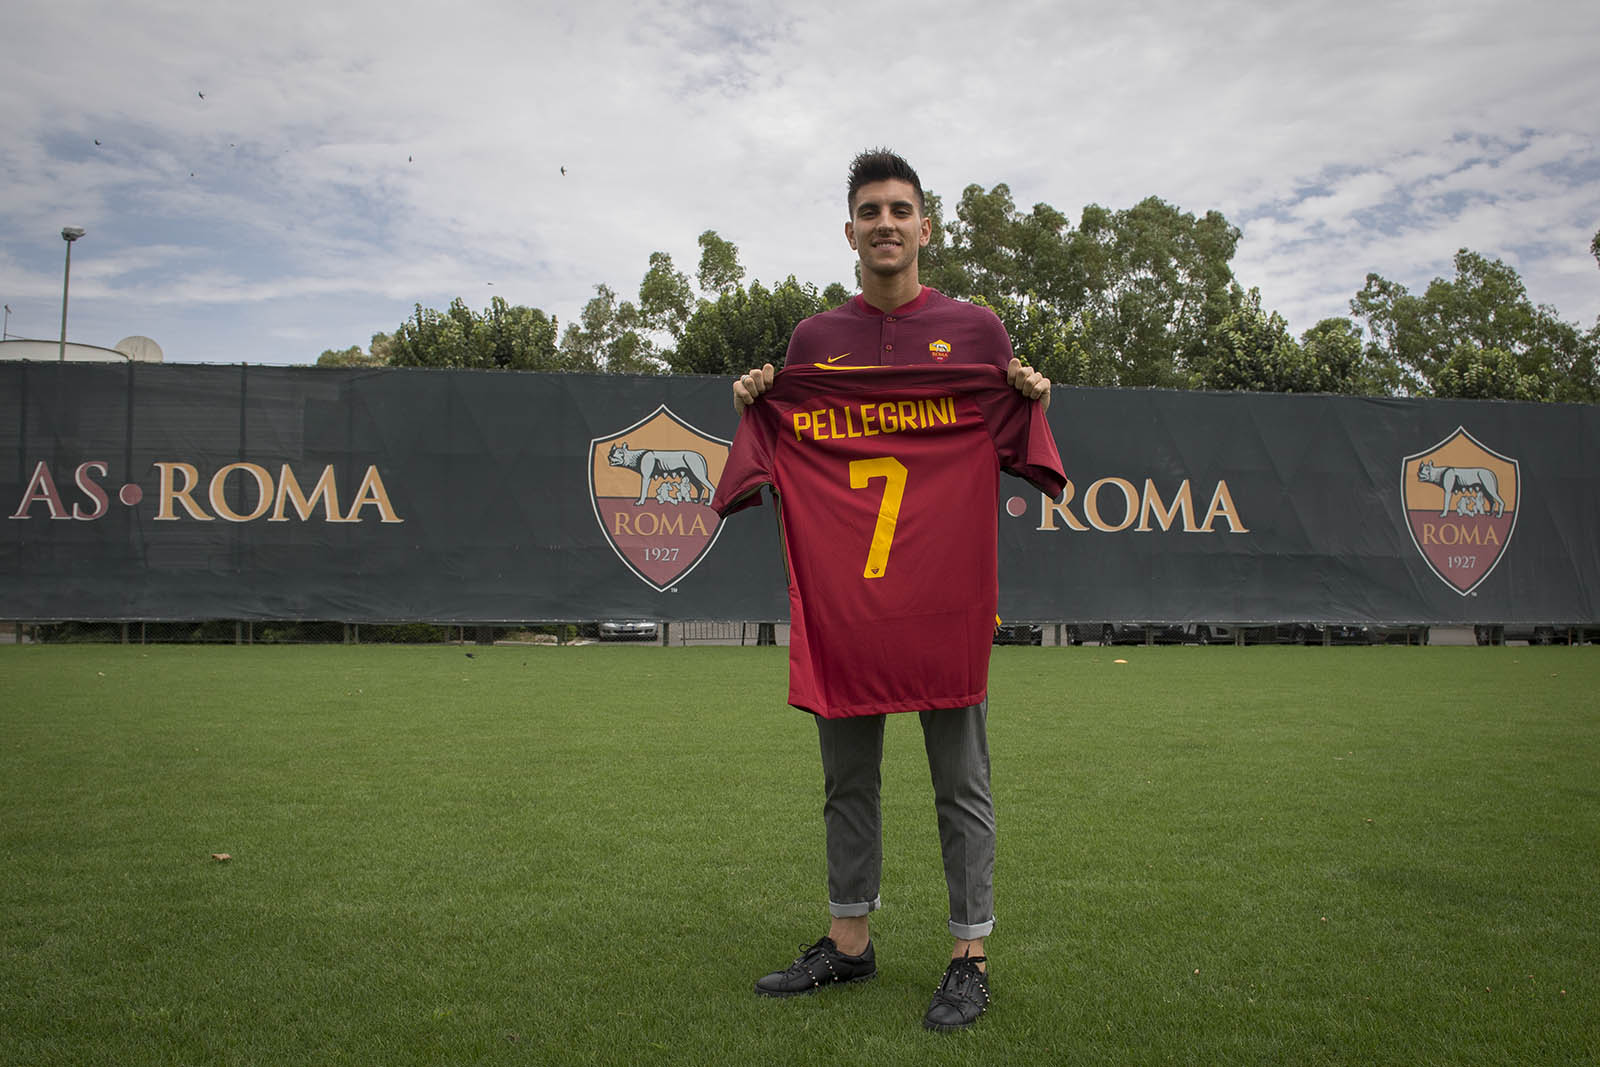 http://res.cloudinary.com/as-roma-turbine-production/image/upload/v1/asroma-uat/avqsl9bkxrt3xz3bdkbh